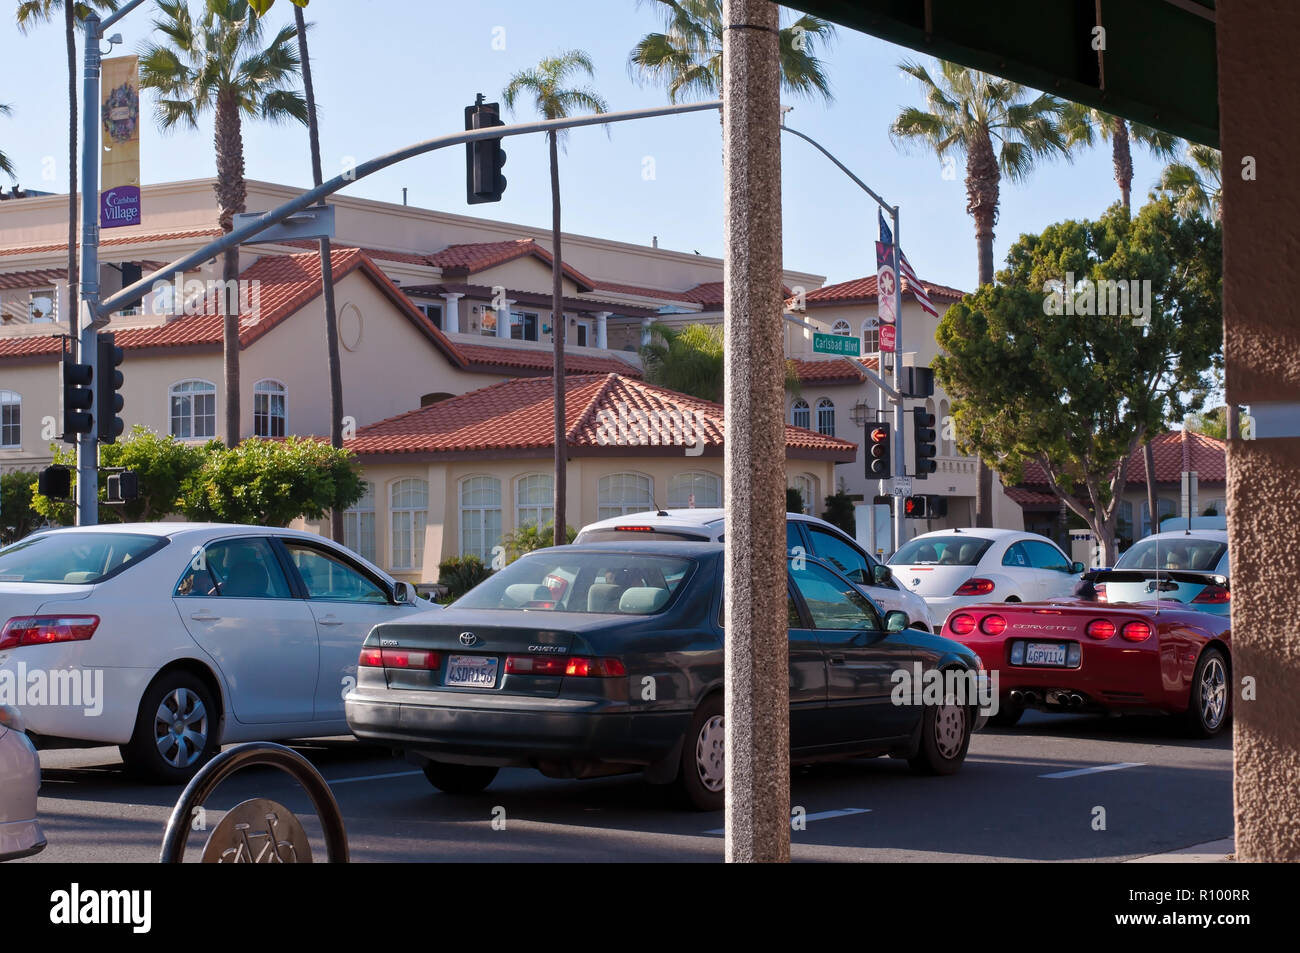 Traffic in Carlsbad, California, USA - Stock Image